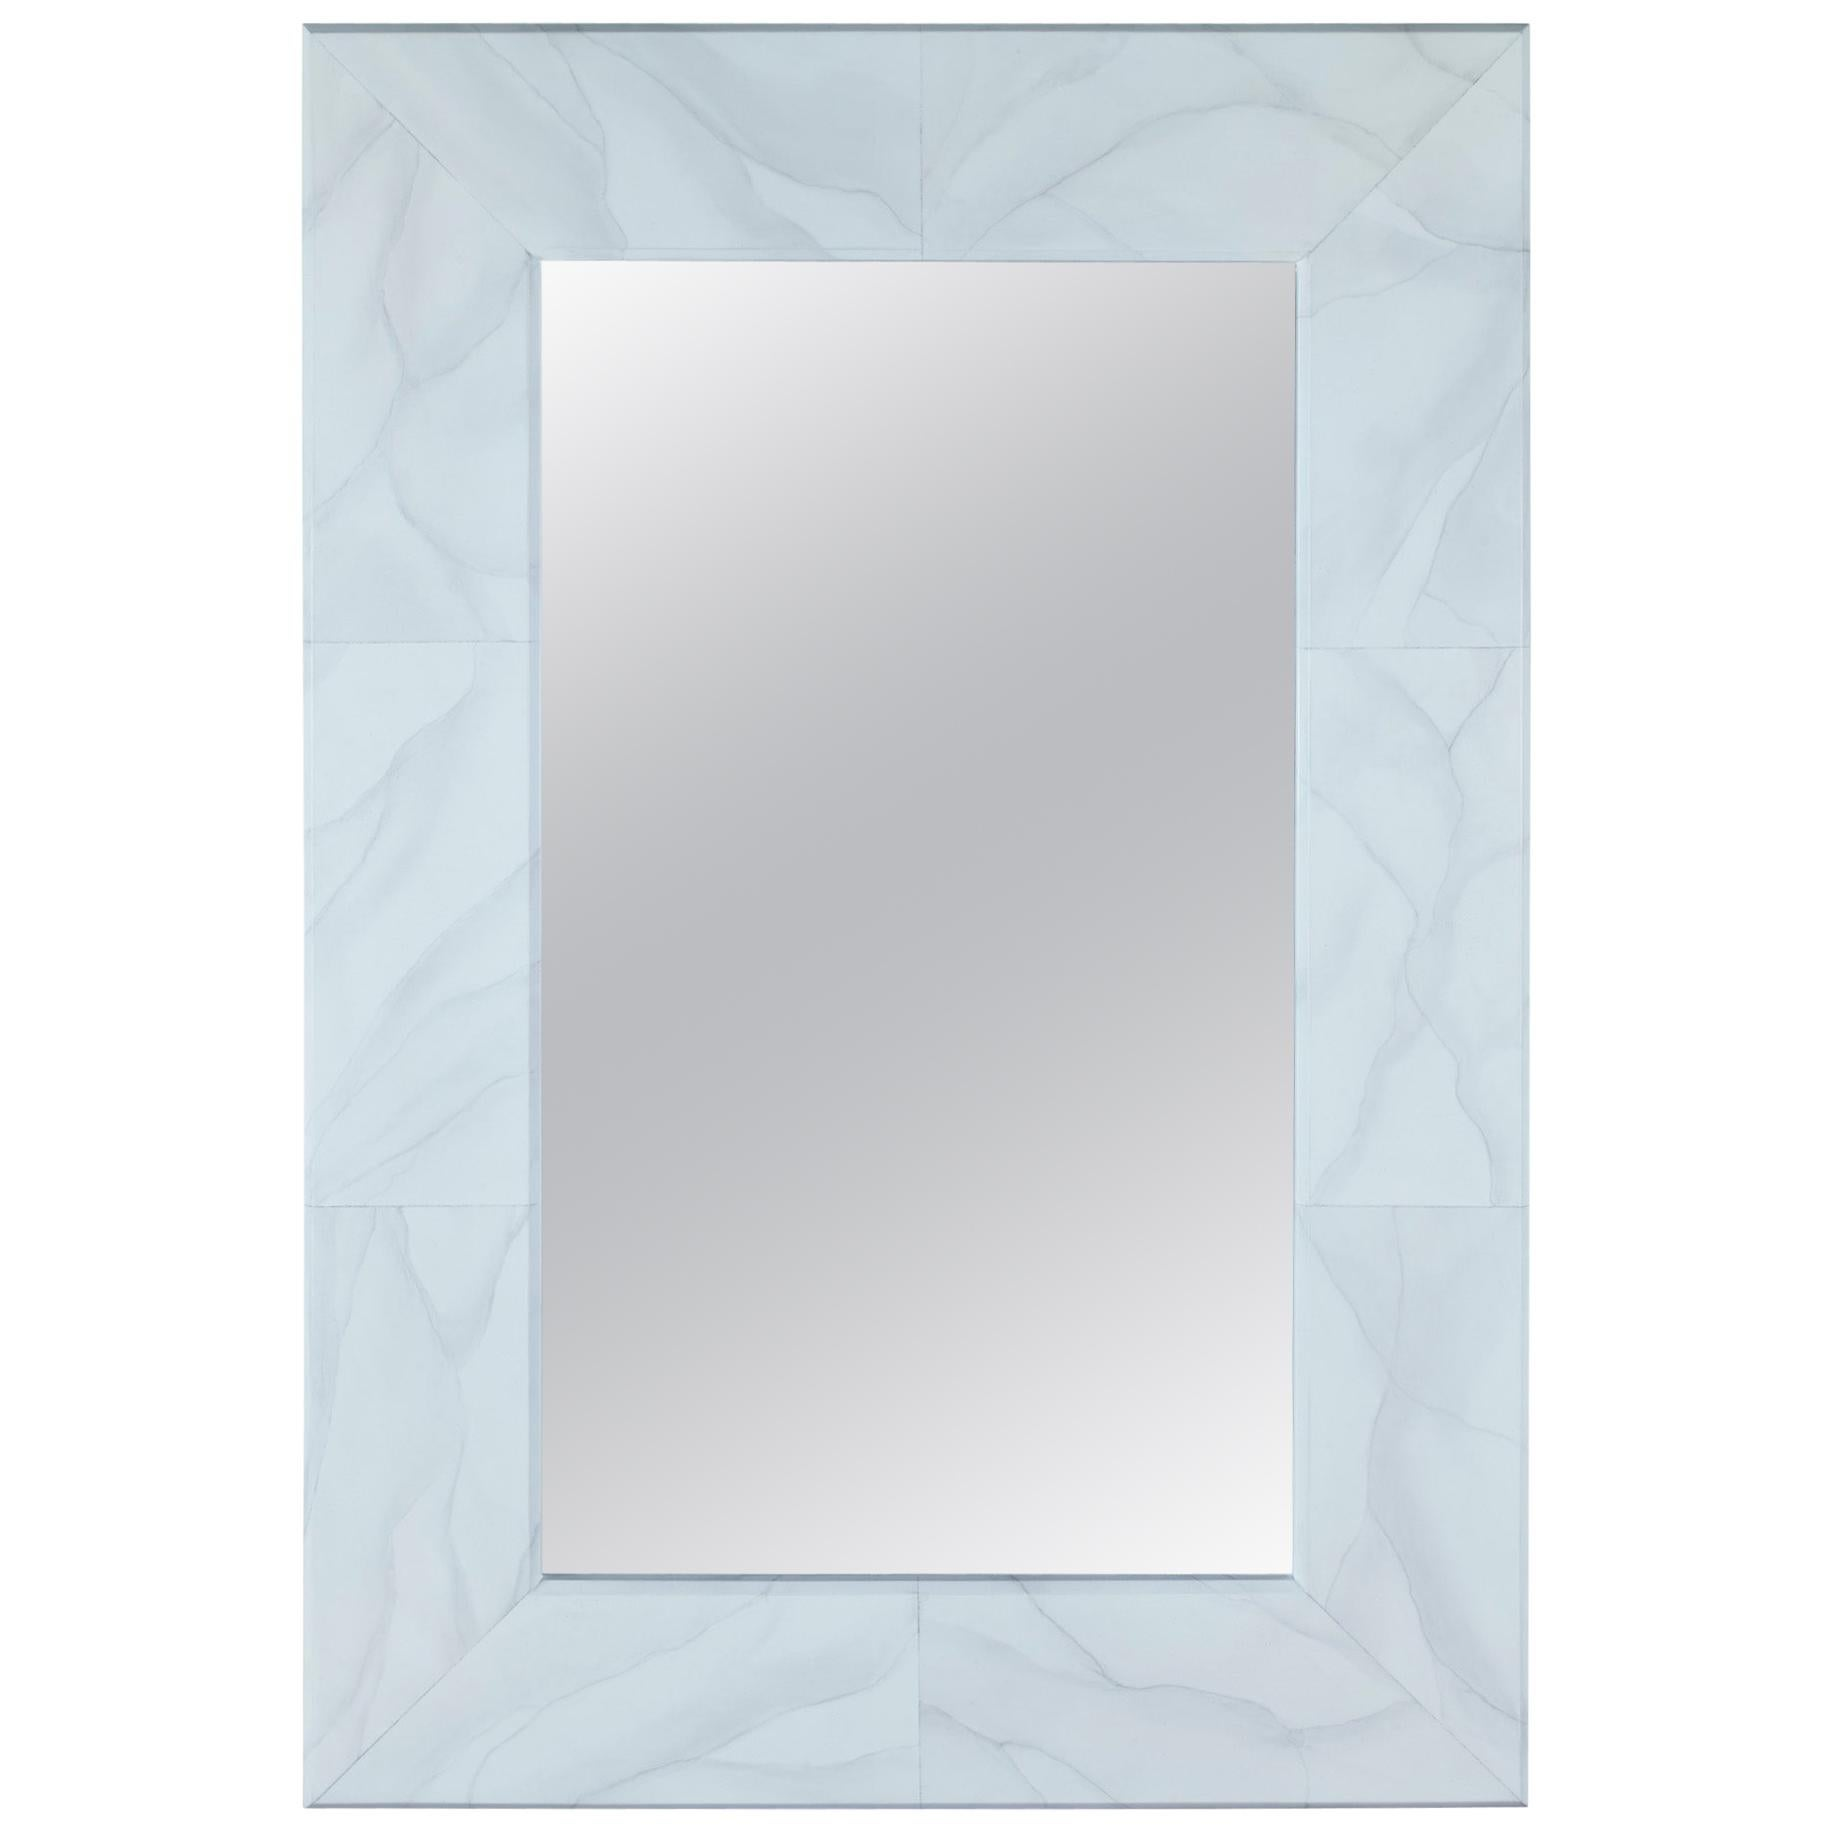 Gracie Mirror in Gray Glass by CuratedKravet